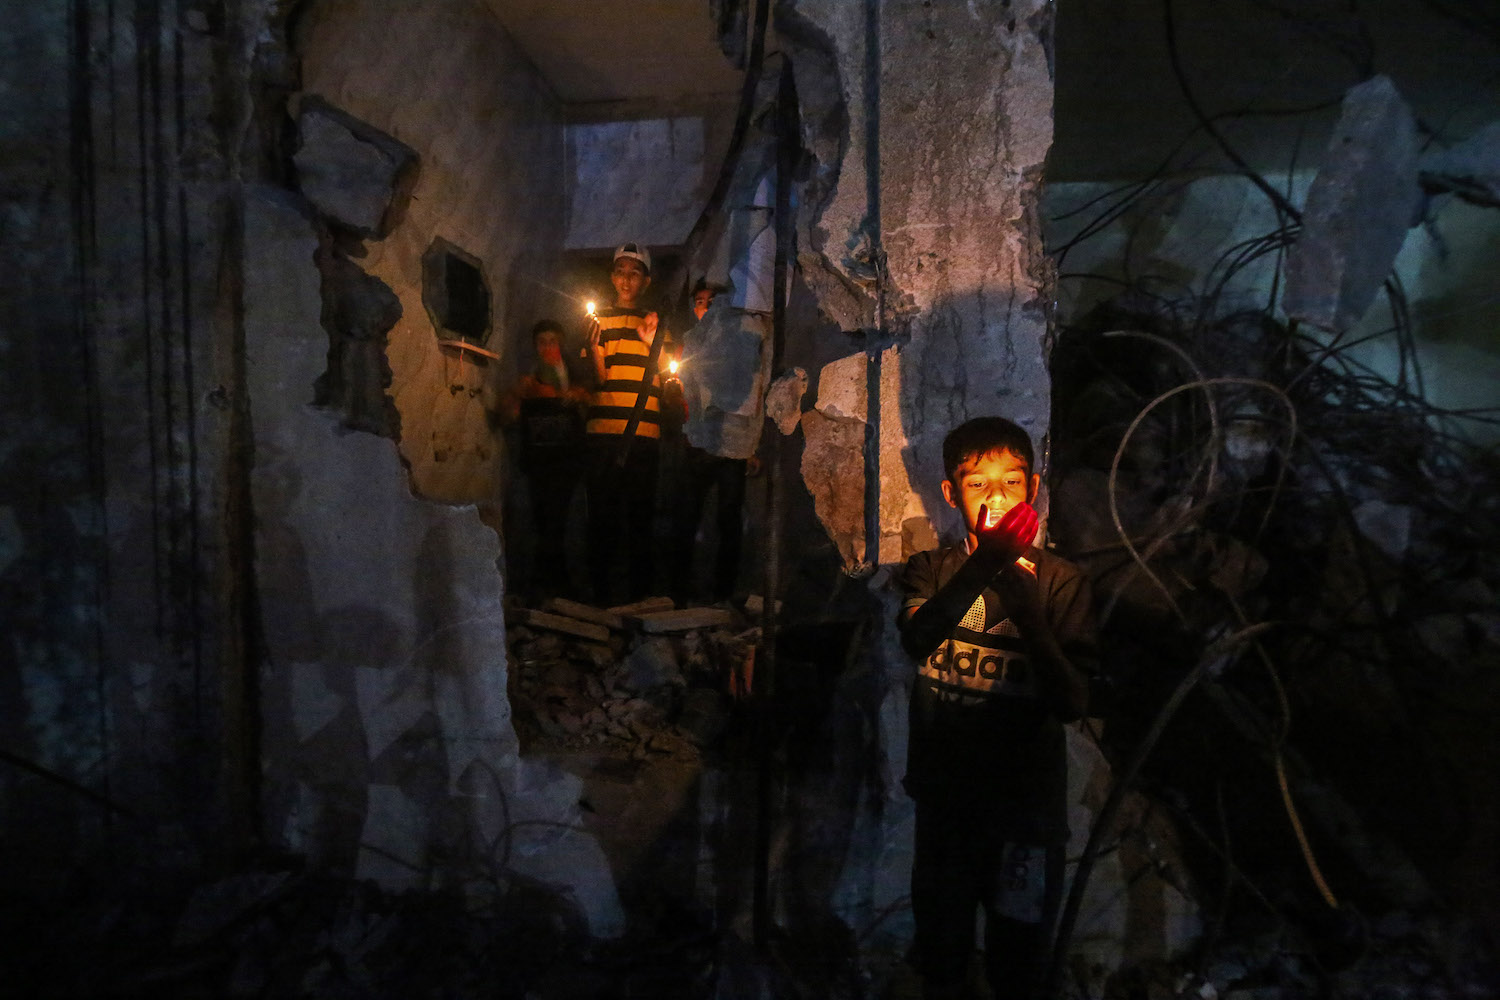 Palestinian children light candles during a protest near destroyed buildings in the southern Gaza Strip city of Rafah, May 25, 2021. (Abed Rahim Khatib/Flash90)